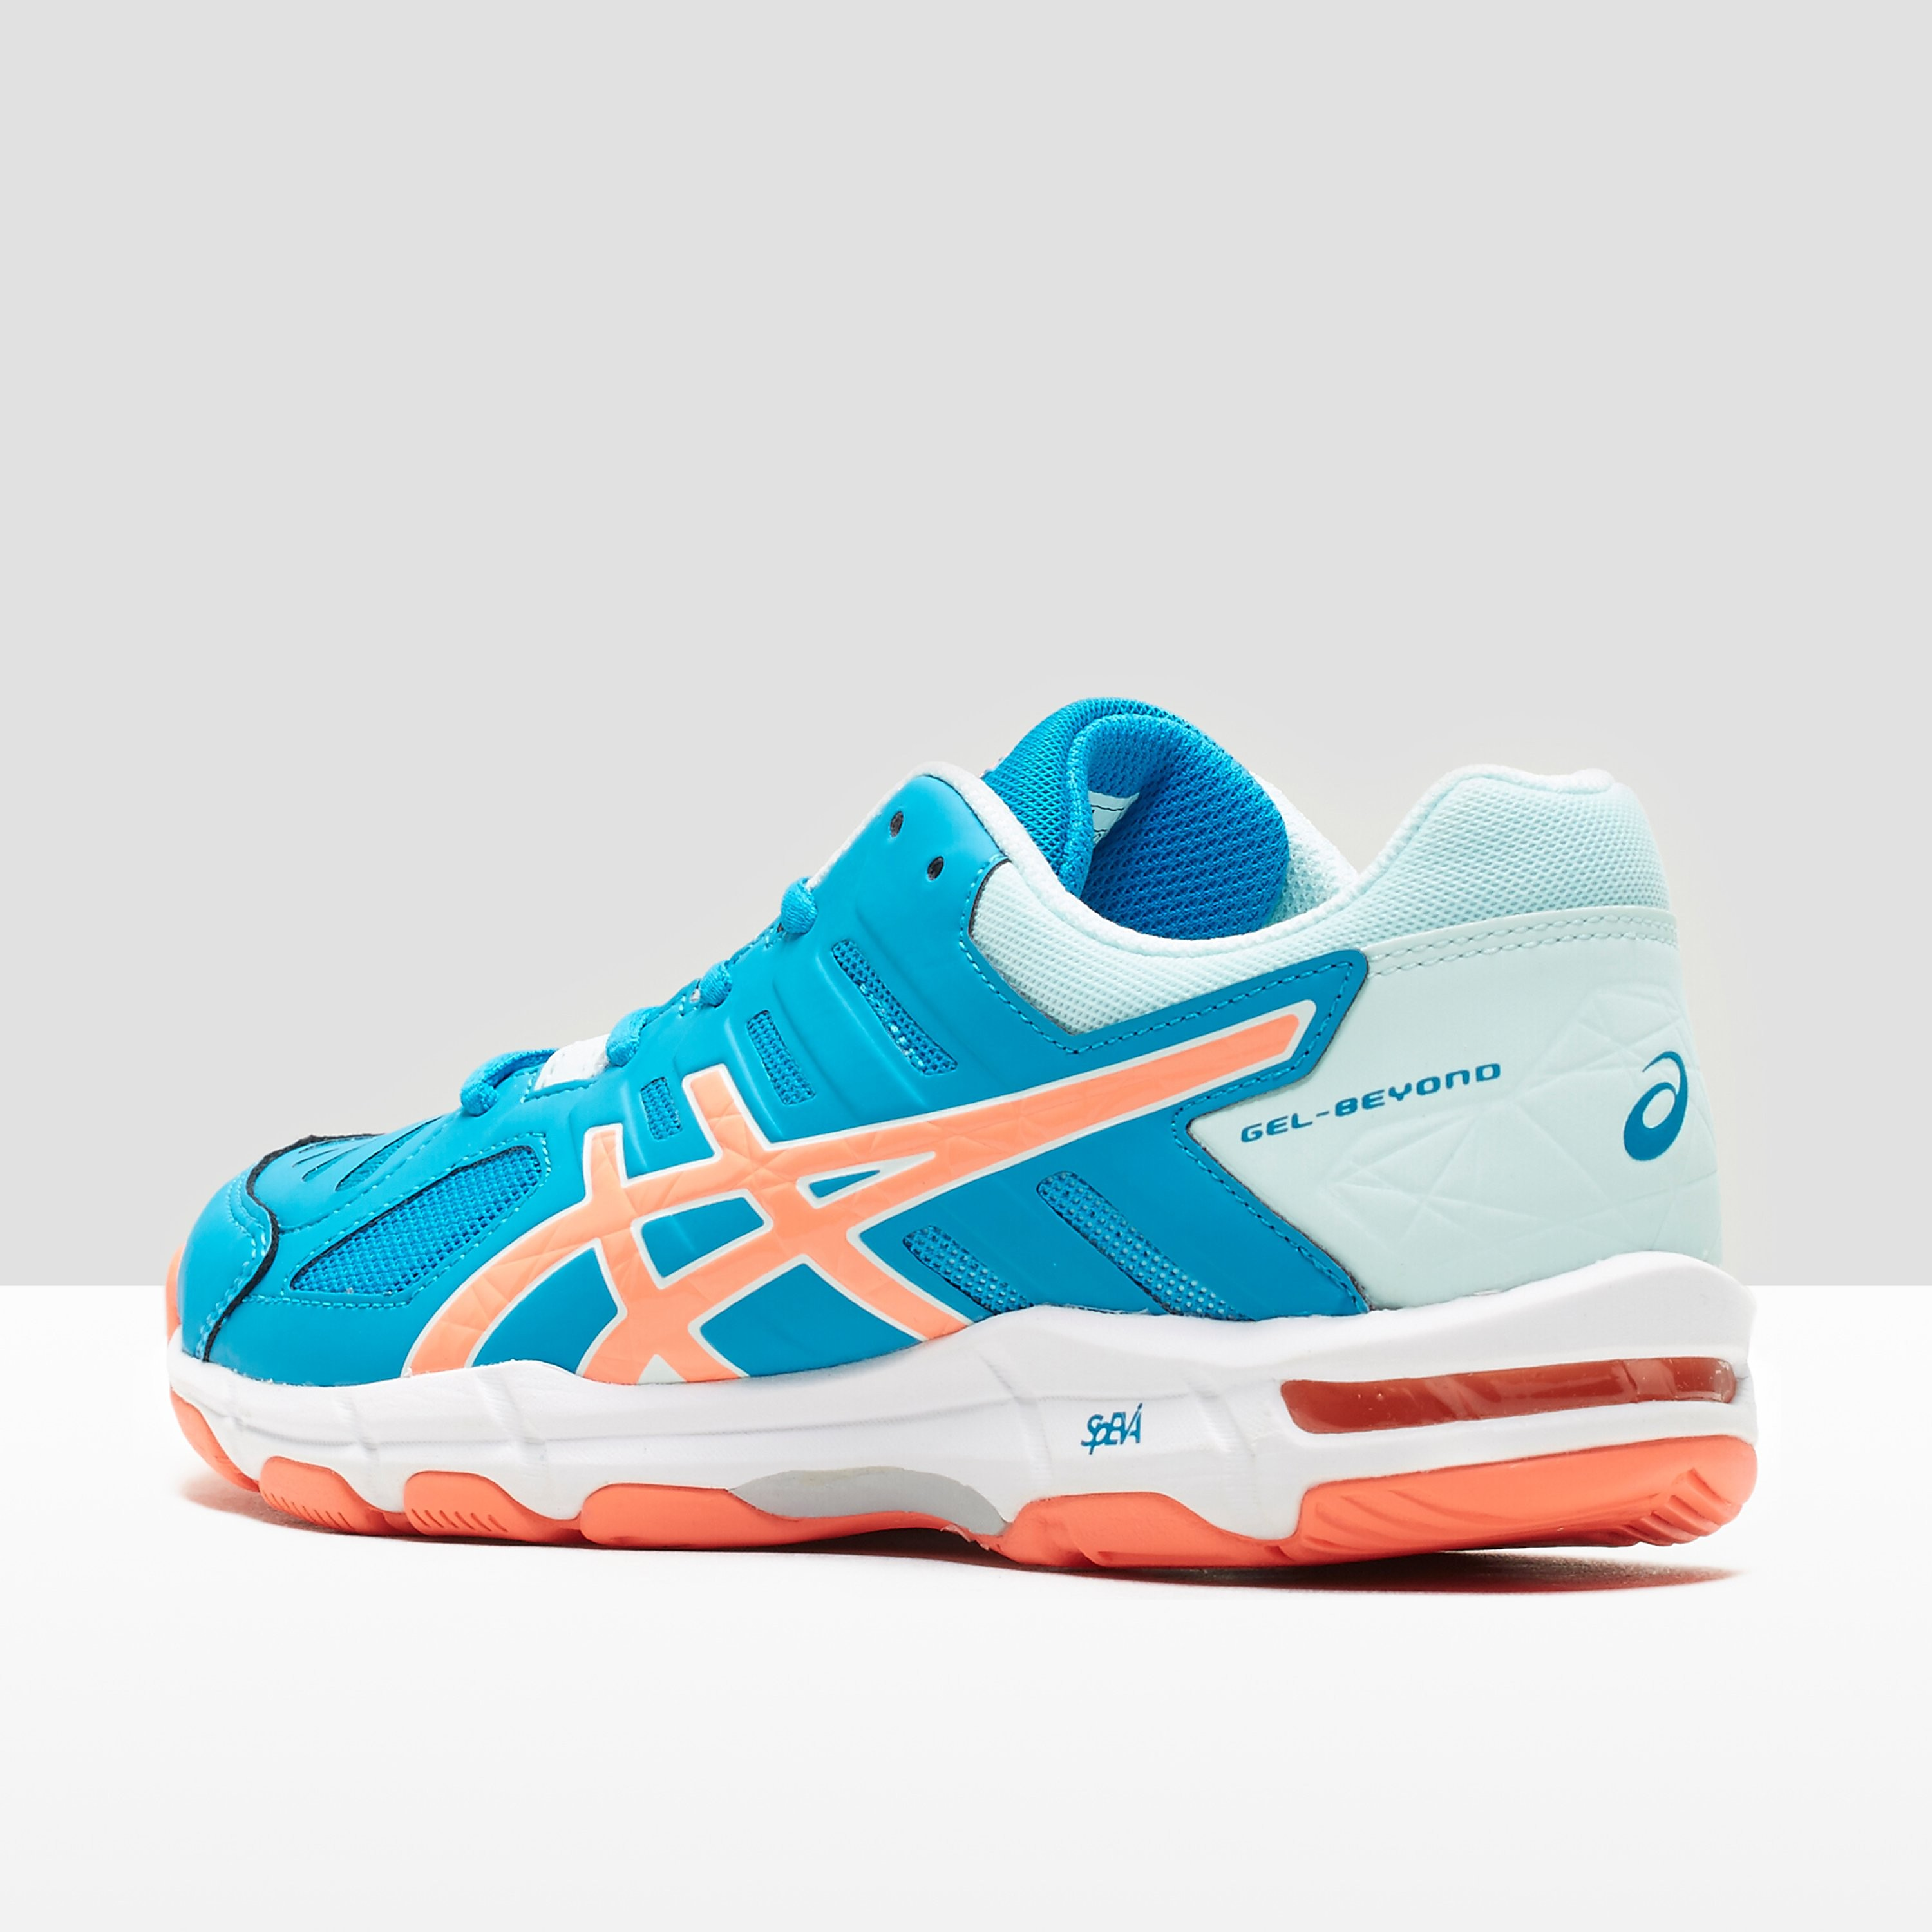 Asics GEL-BEYOND 5 Ladies Court Shoes